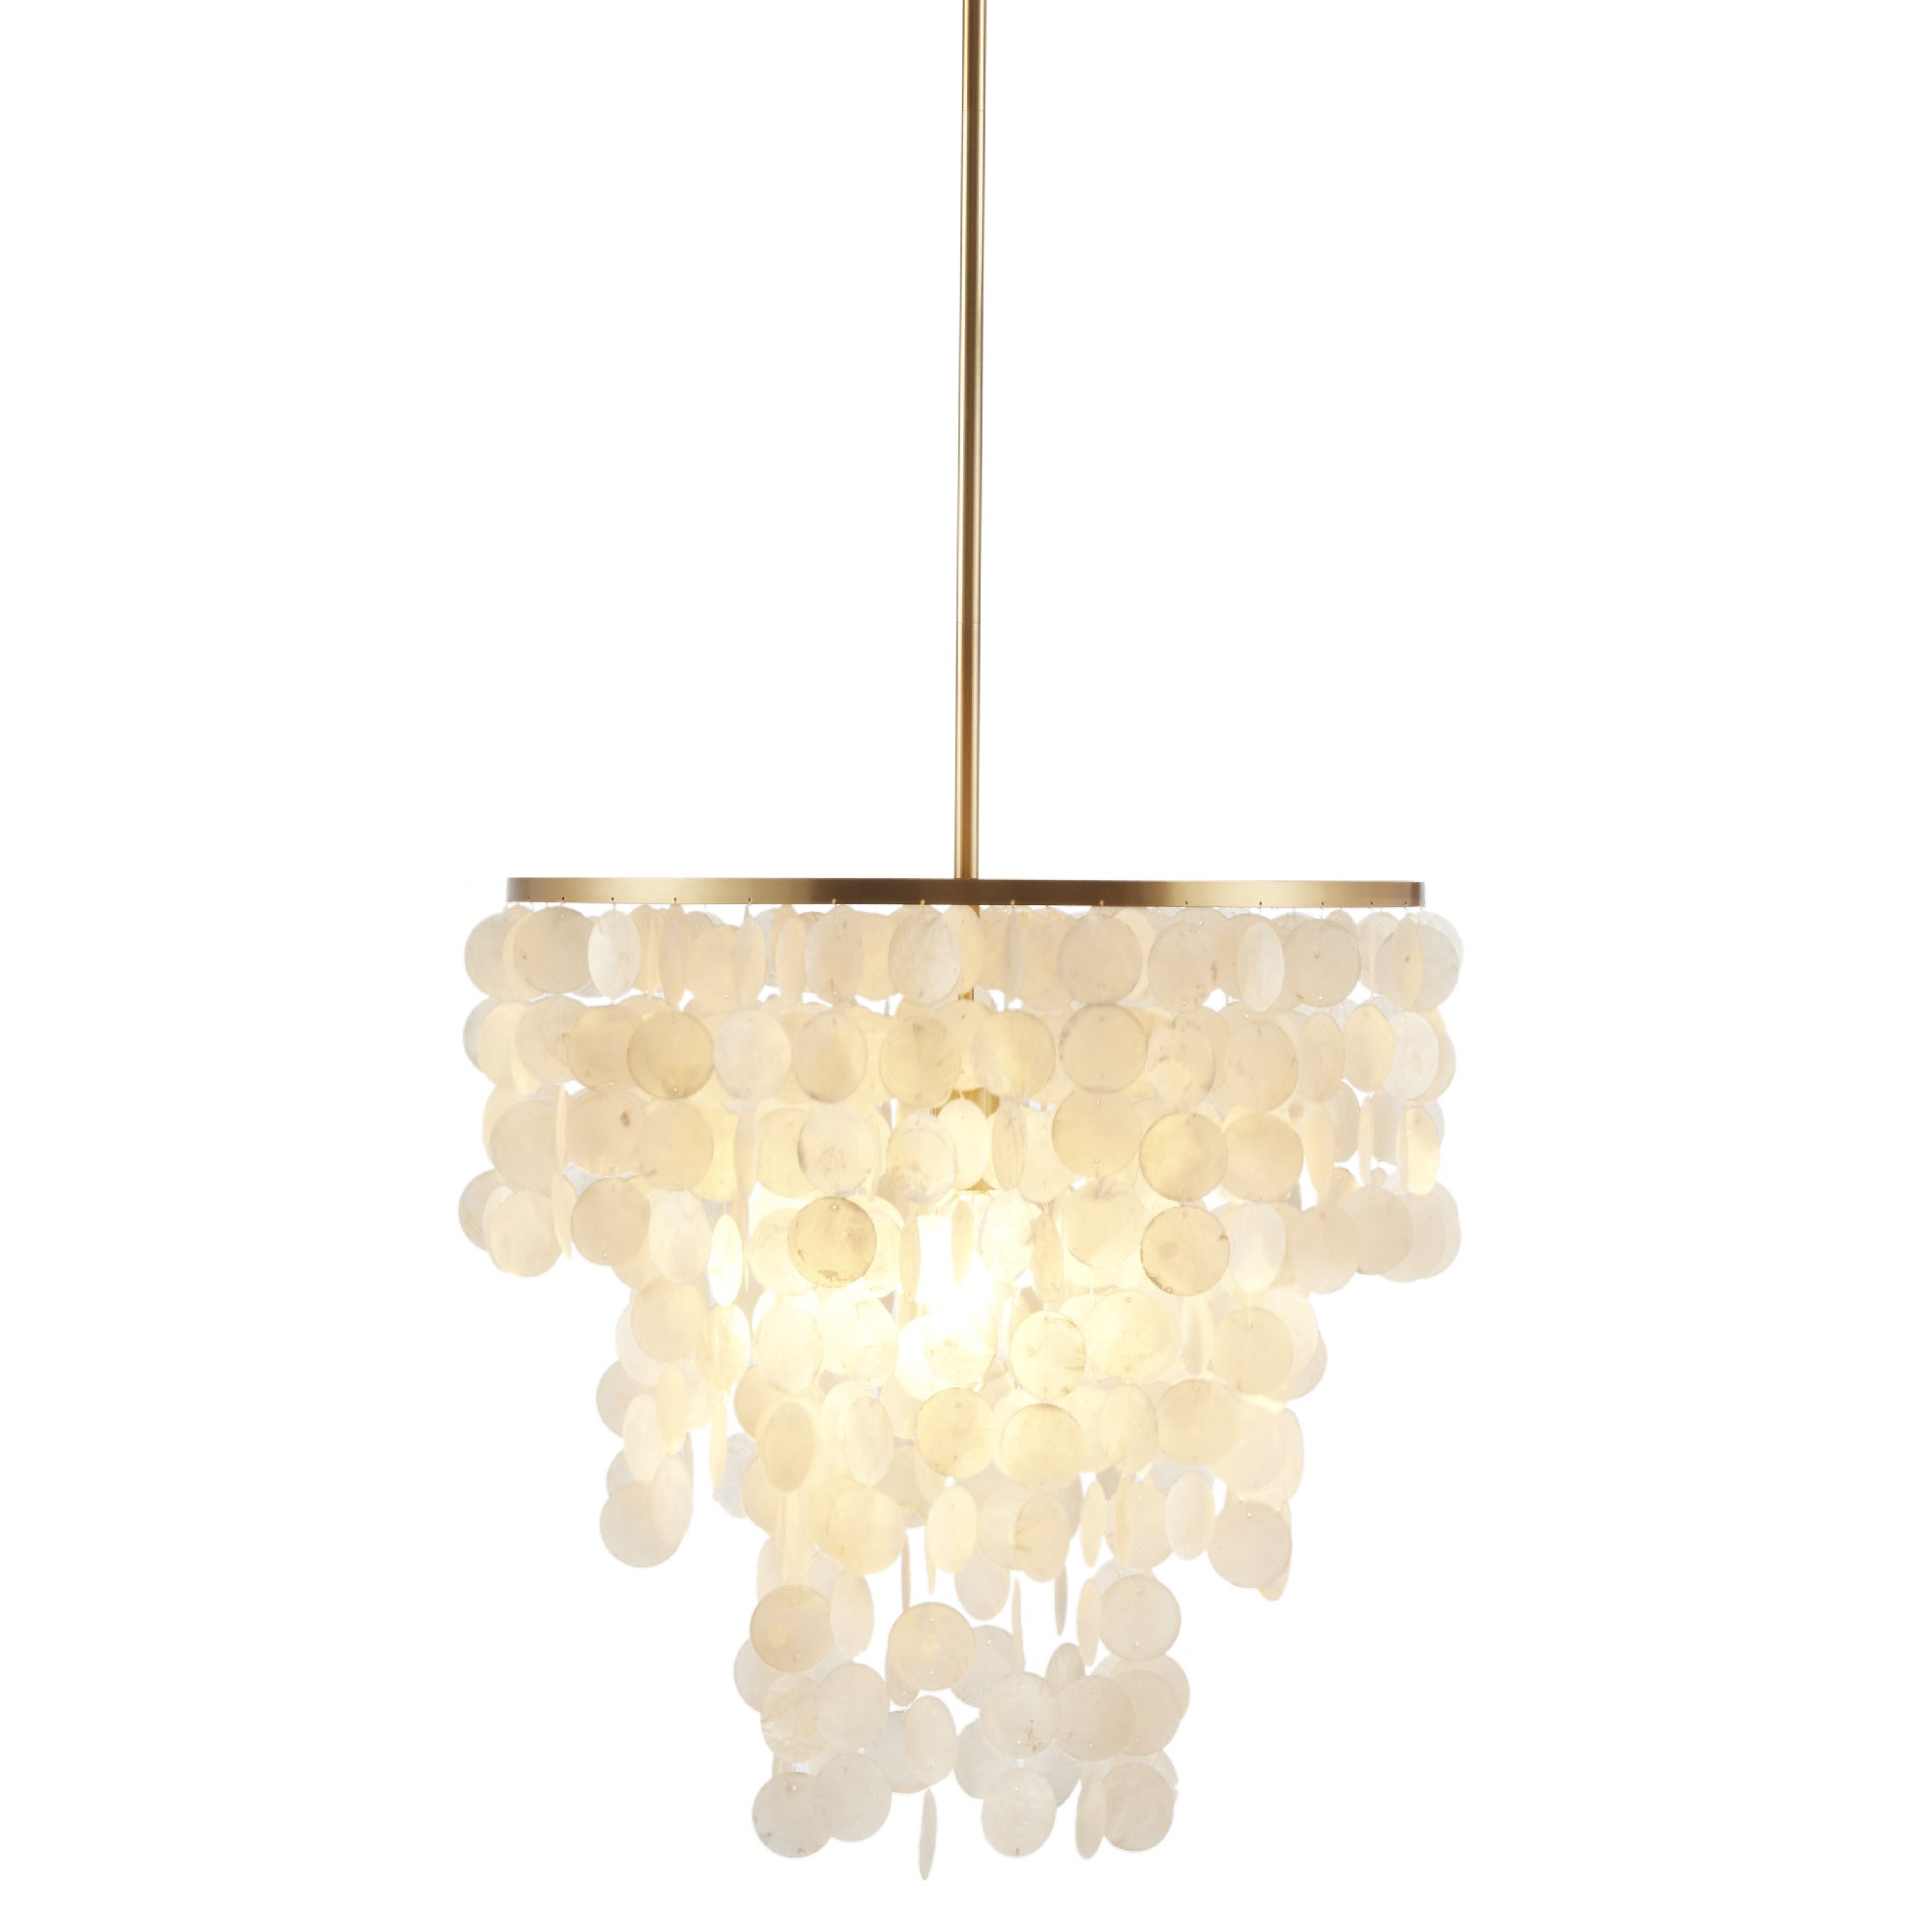 Madison park signature isla white chandelier free shipping today madison park signature isla white chandelier free shipping today overstock 25505355 arubaitofo Image collections